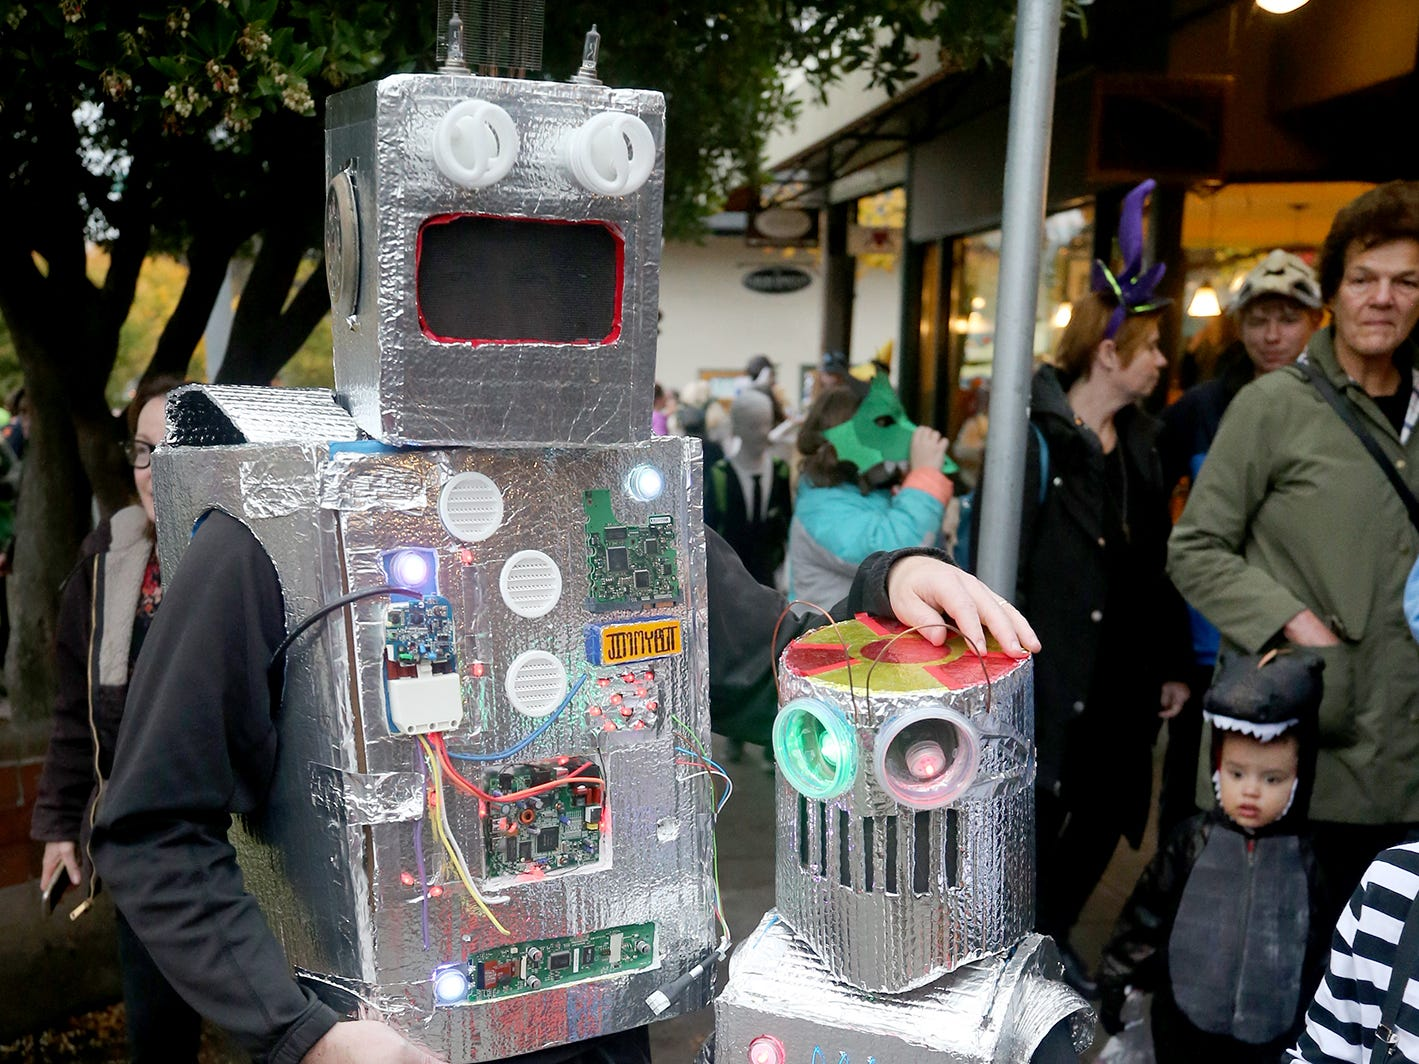 Jim Voss, left, and son Regan, 5, of Bainbridge, dressed as father and son robots for the Bainbridge Island Halloween Walk on October, 31, 2018.